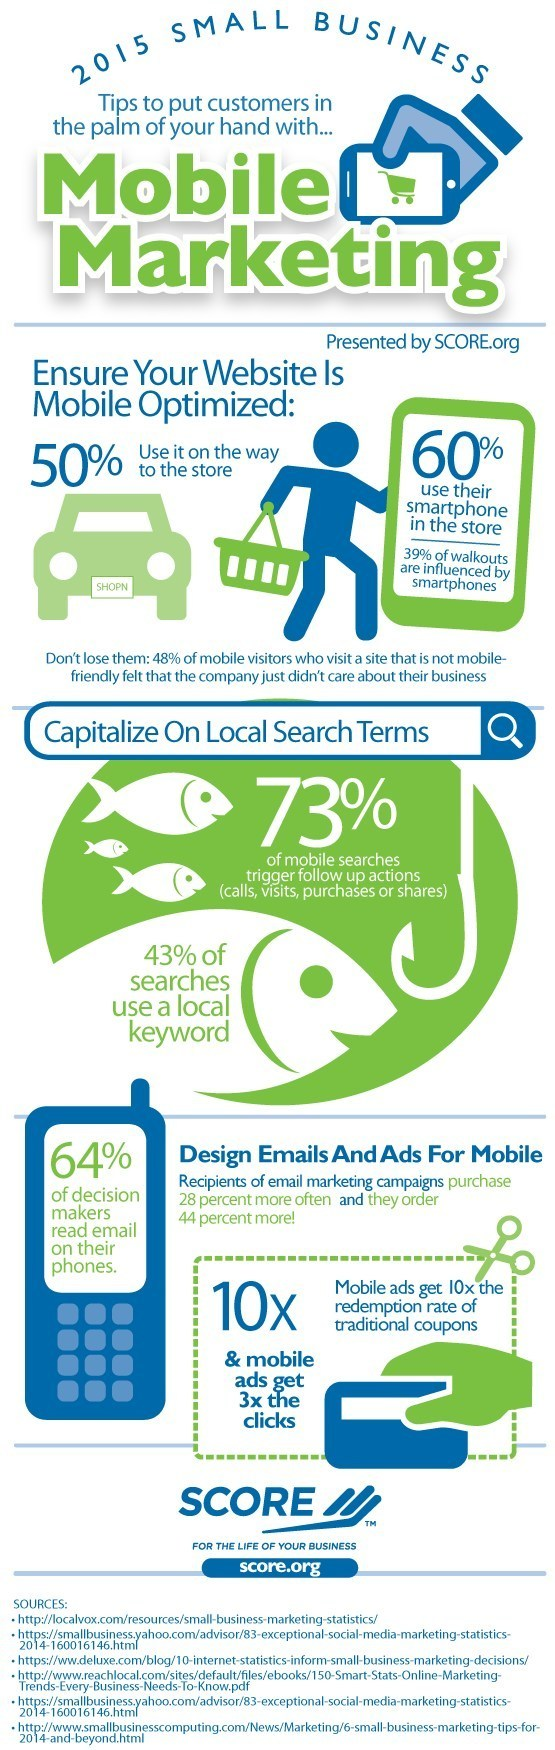 Score.org Infographic - The Importance of Mobile Marketing for Small Business